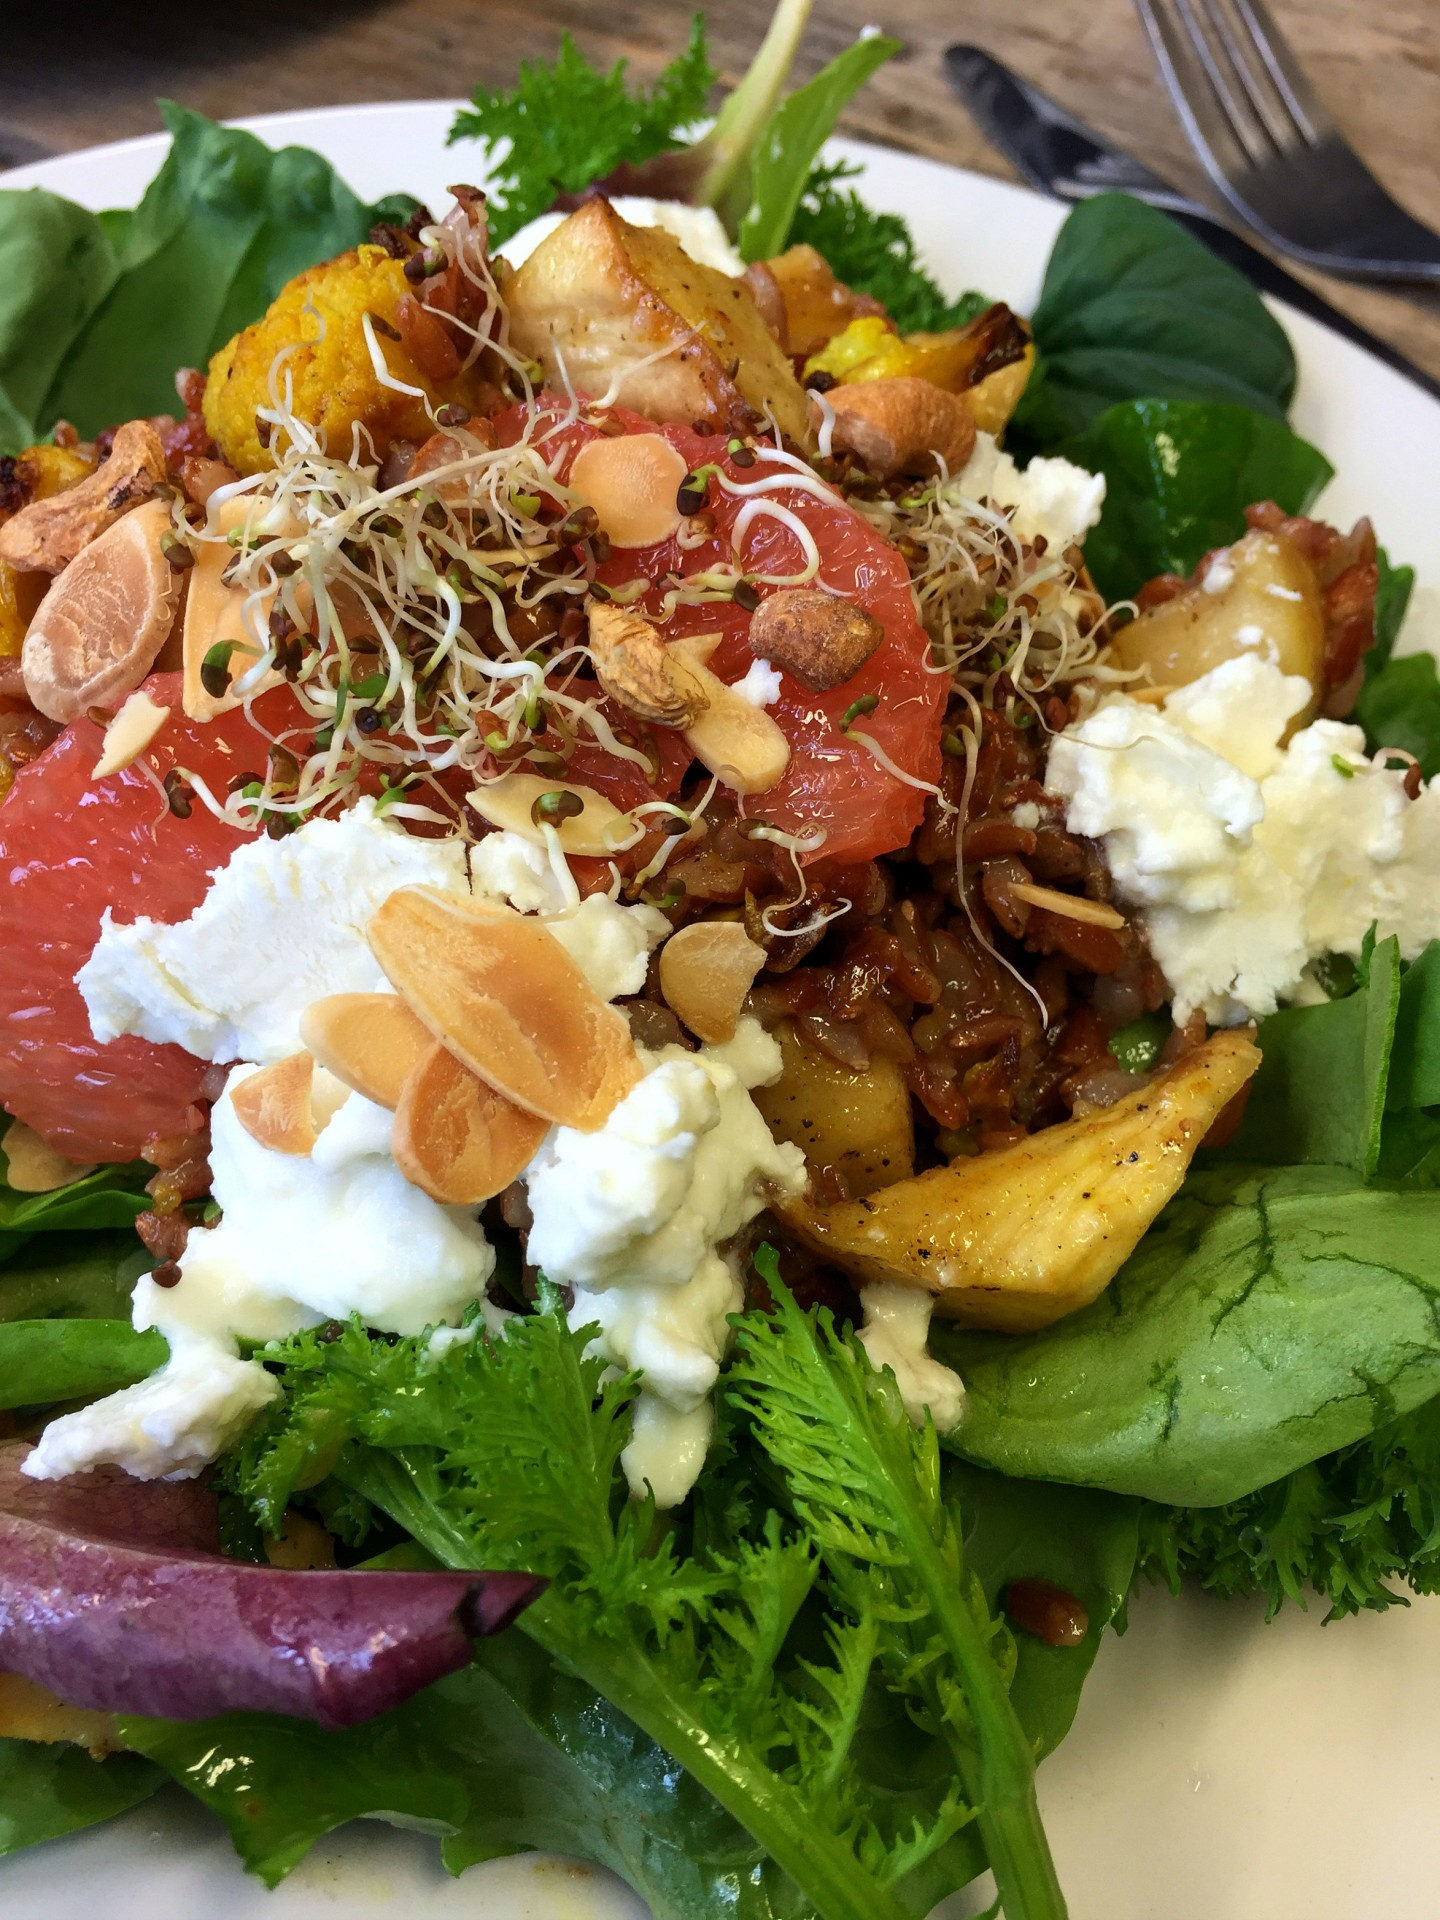 Lunch at Skip Garden Kitchen, Kings Cross. Salad made from organic ingredients grown in their very own garden.